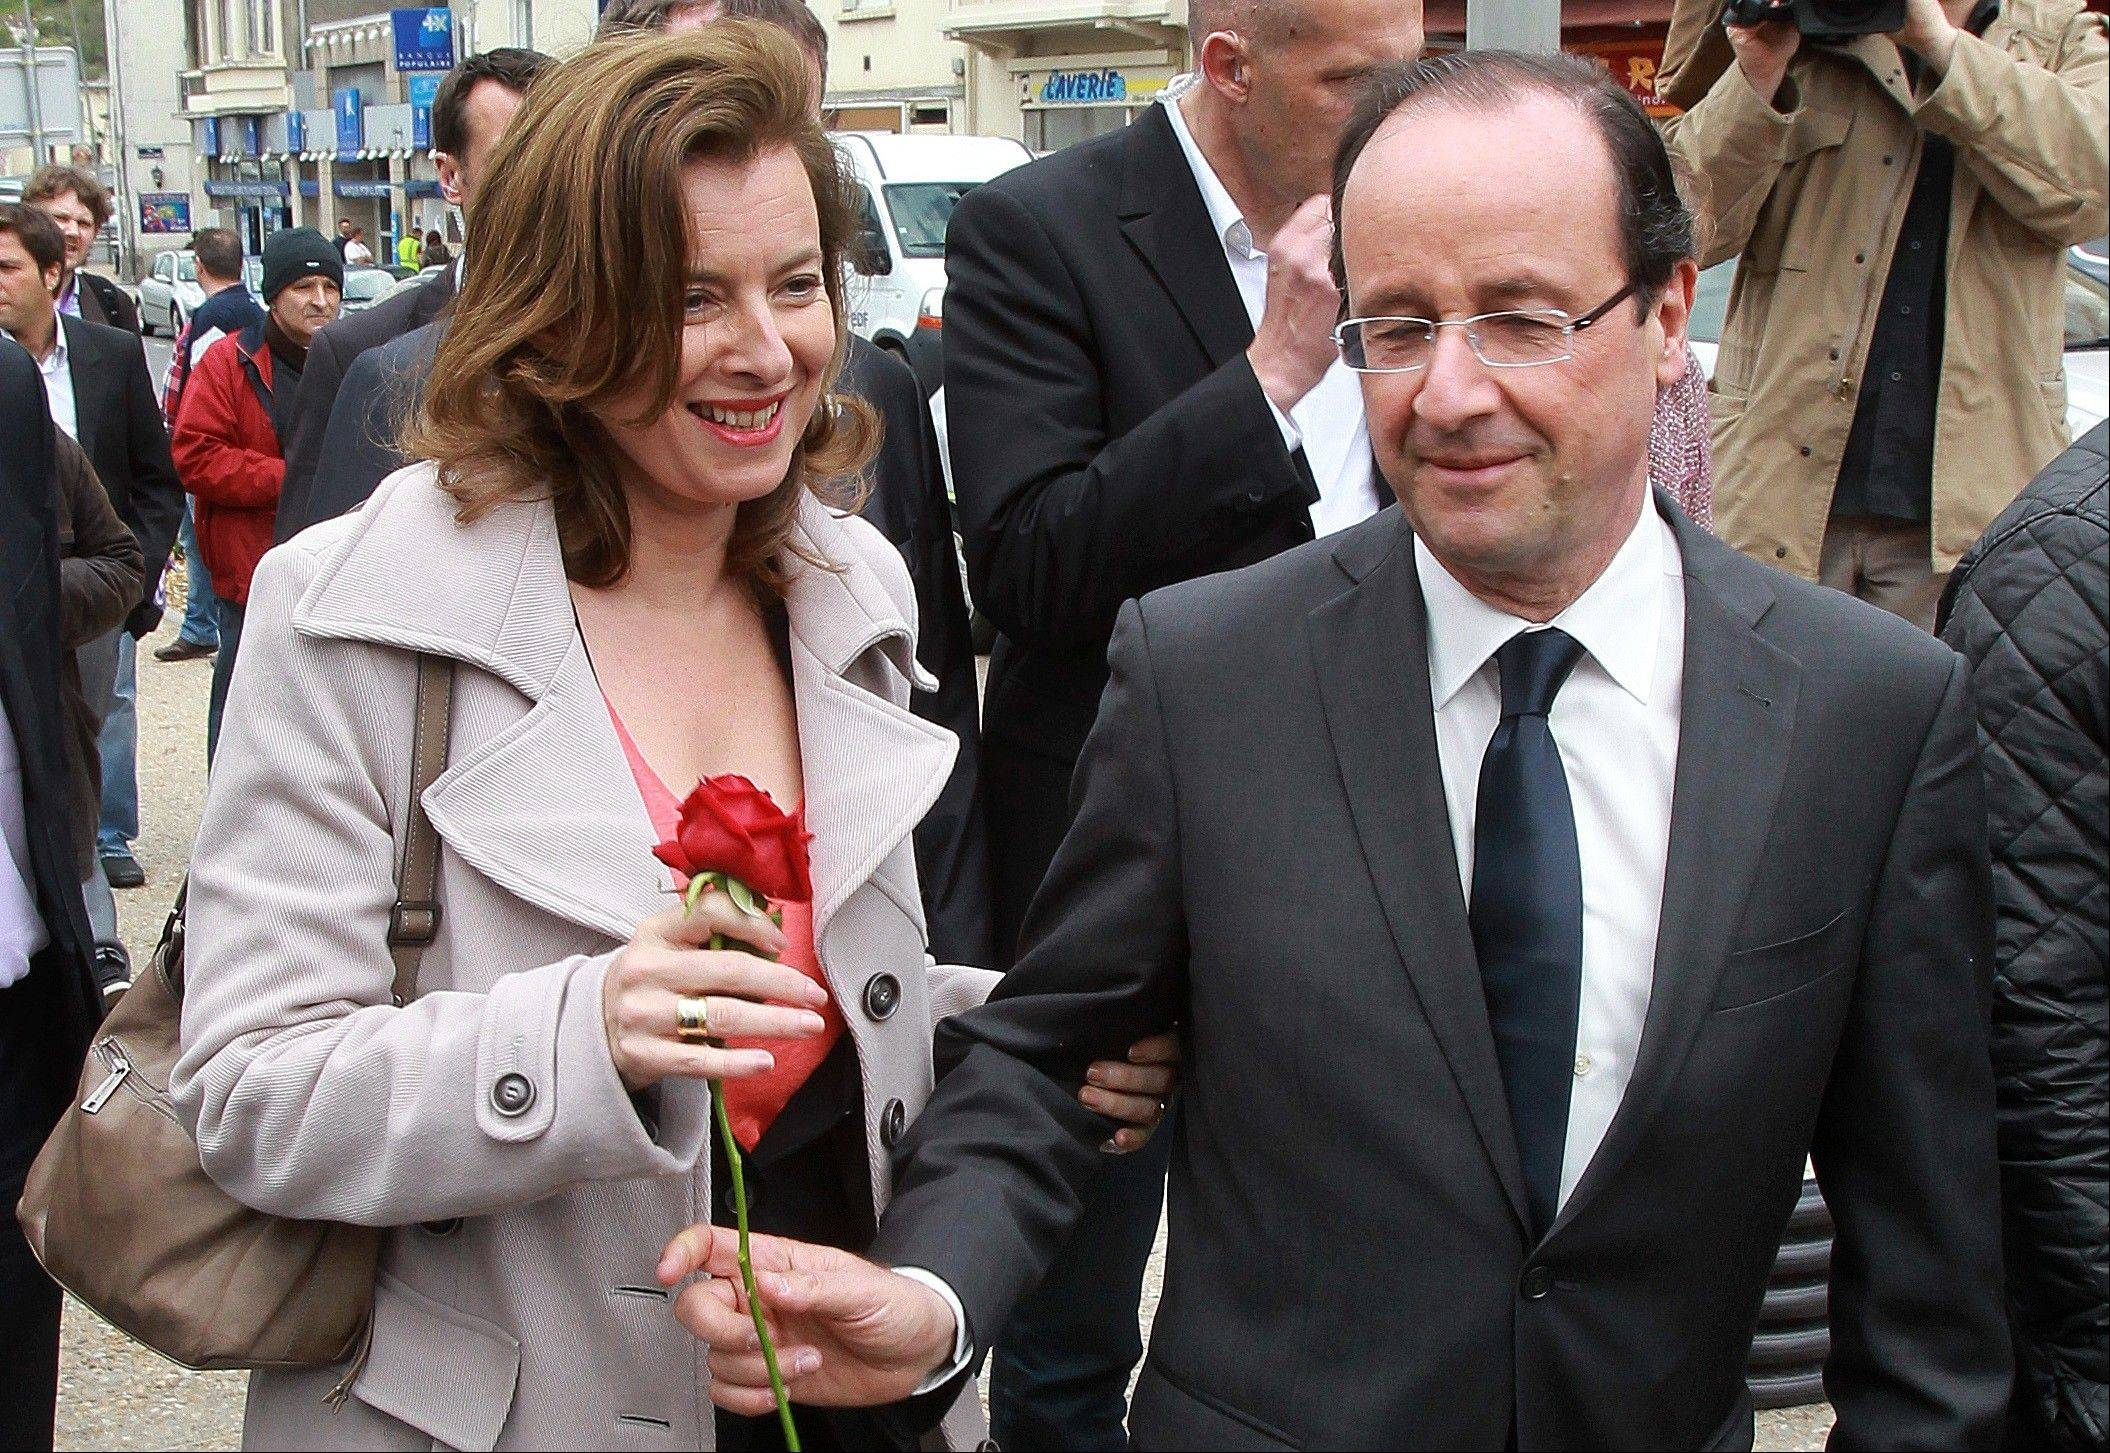 French President Francois Hollande offers a rose to his companion Valerie Trierweiler back in May 2012. The woman considered France's first lady was hospitalized after a report that Hollande is having an affair with an actress, her office said Sunday.